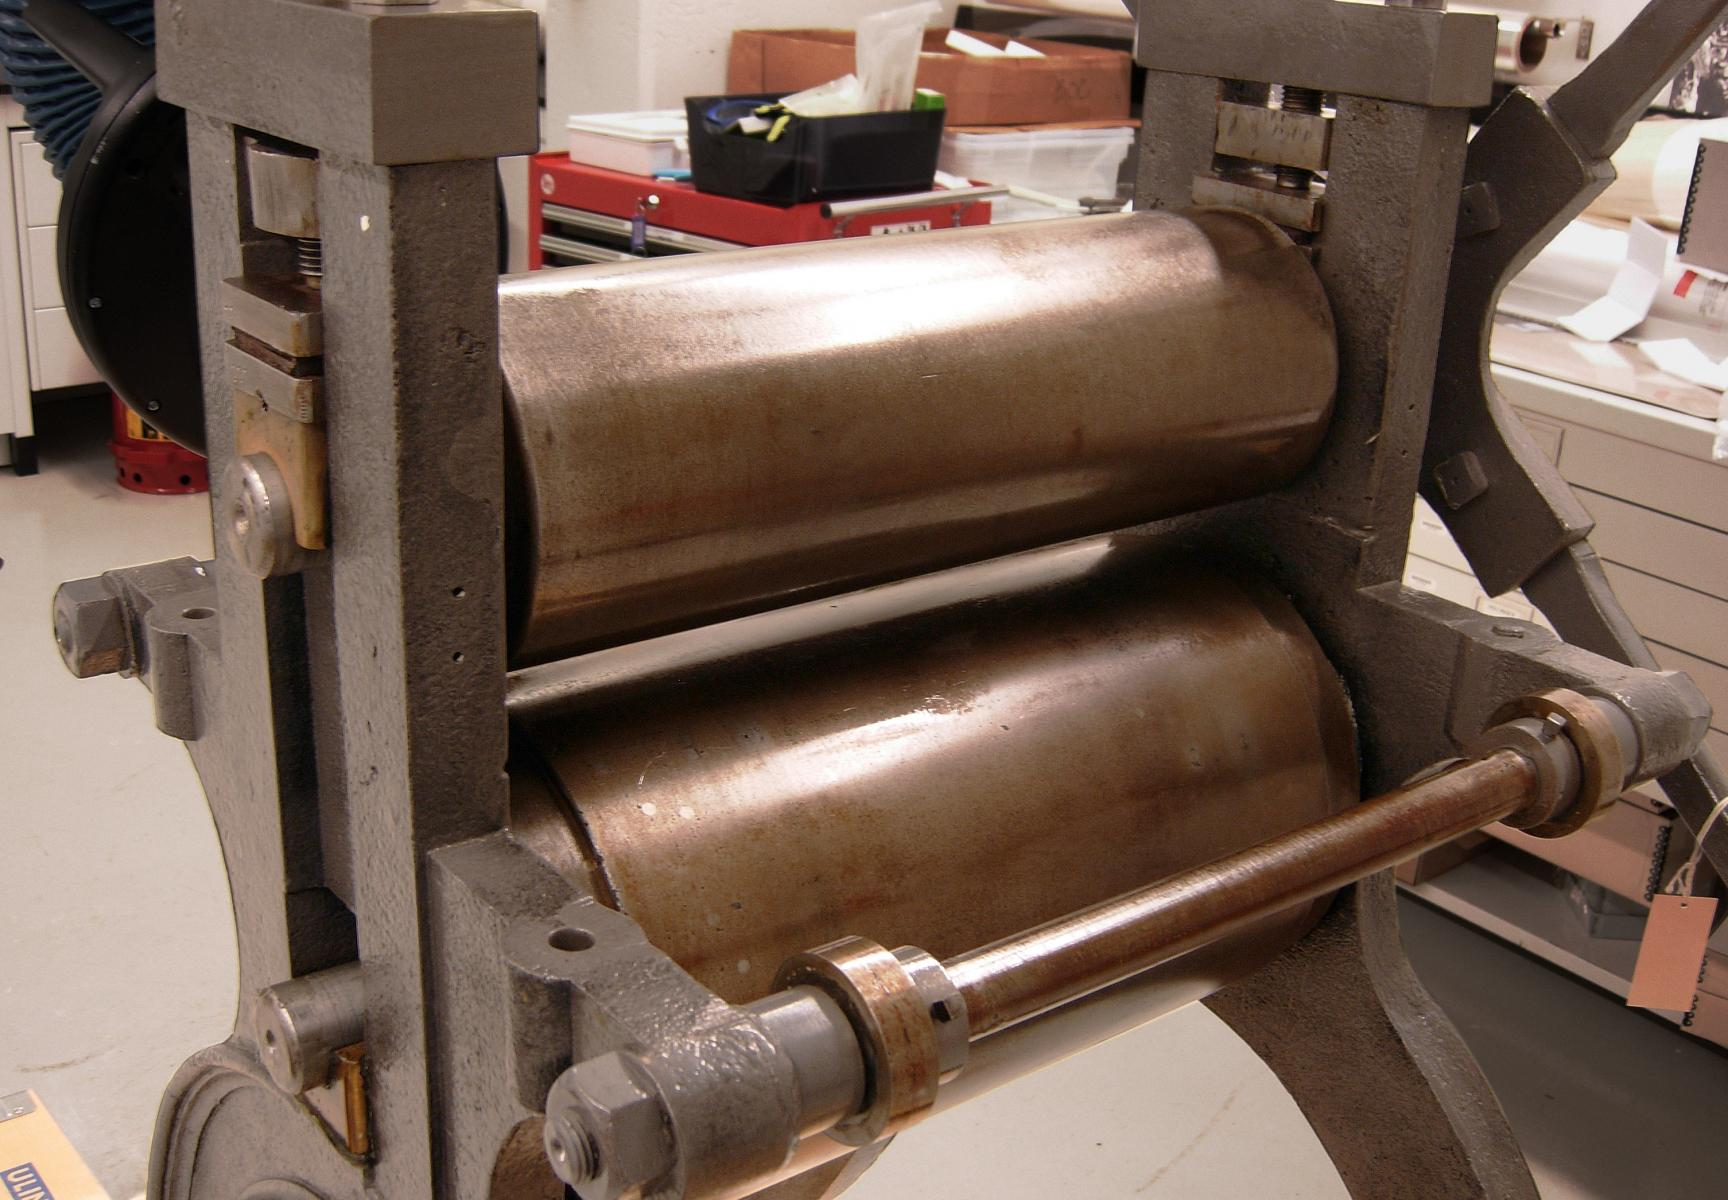 19th century print press showing oiled cylinders